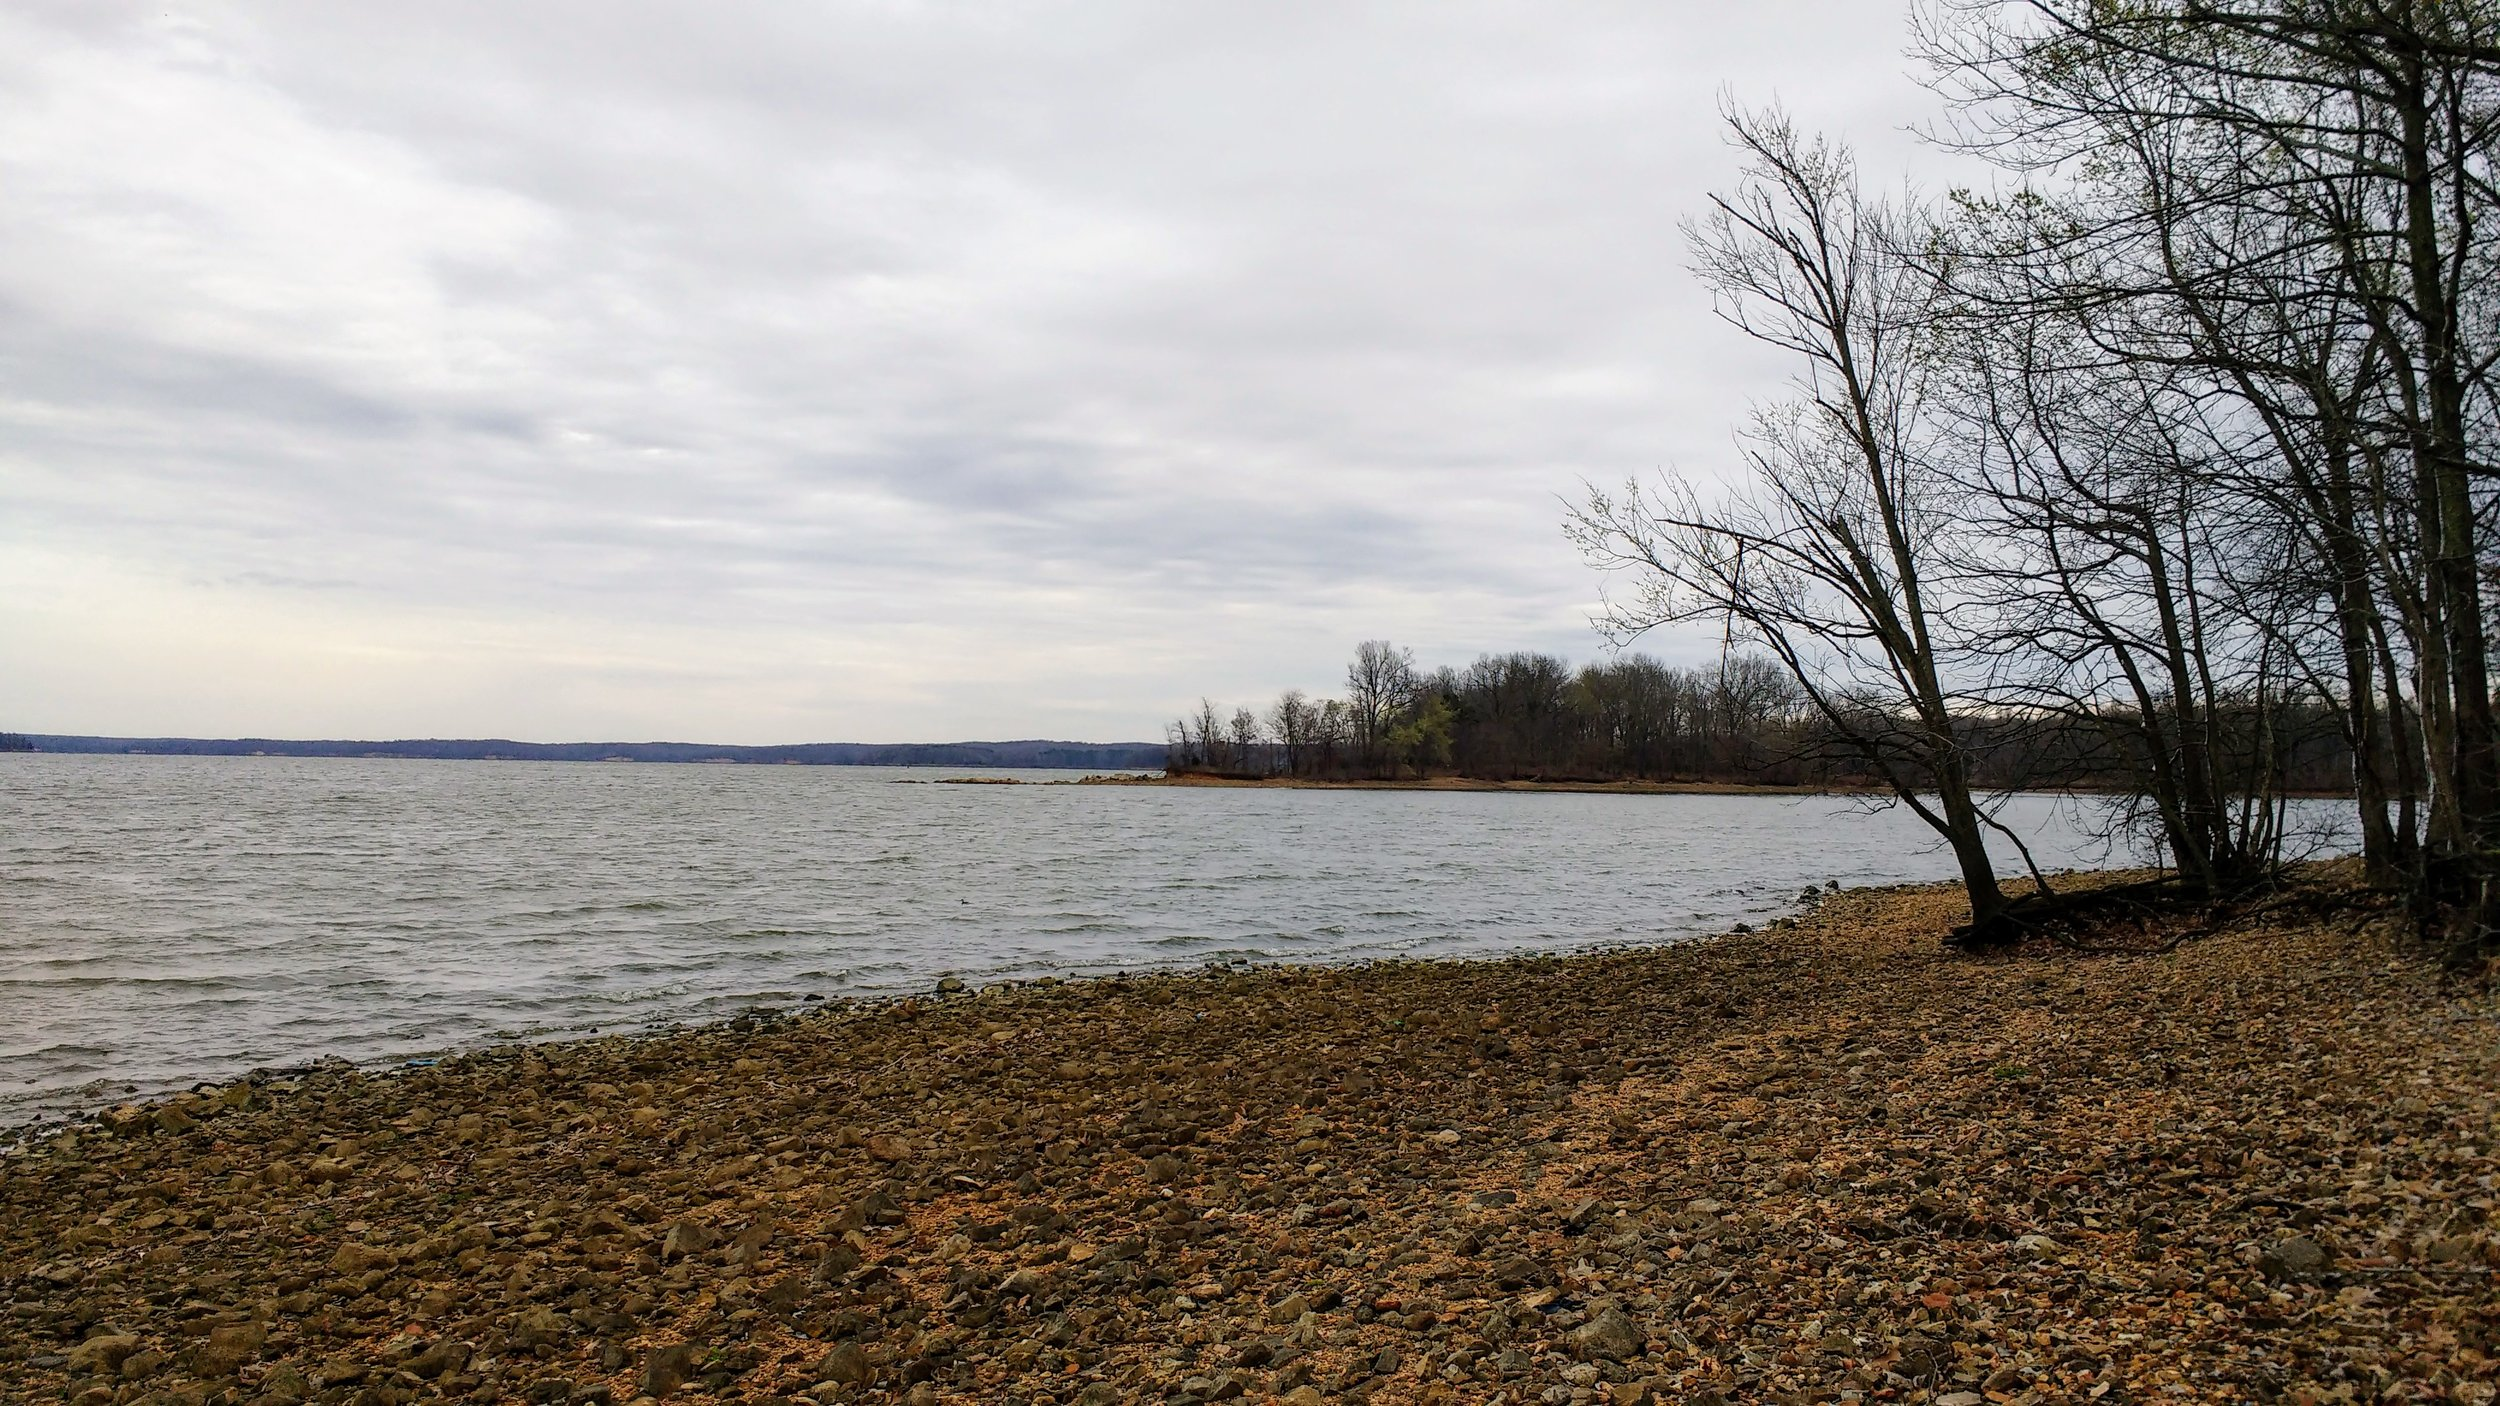 The rocky shoreline at Land Between the Lakes